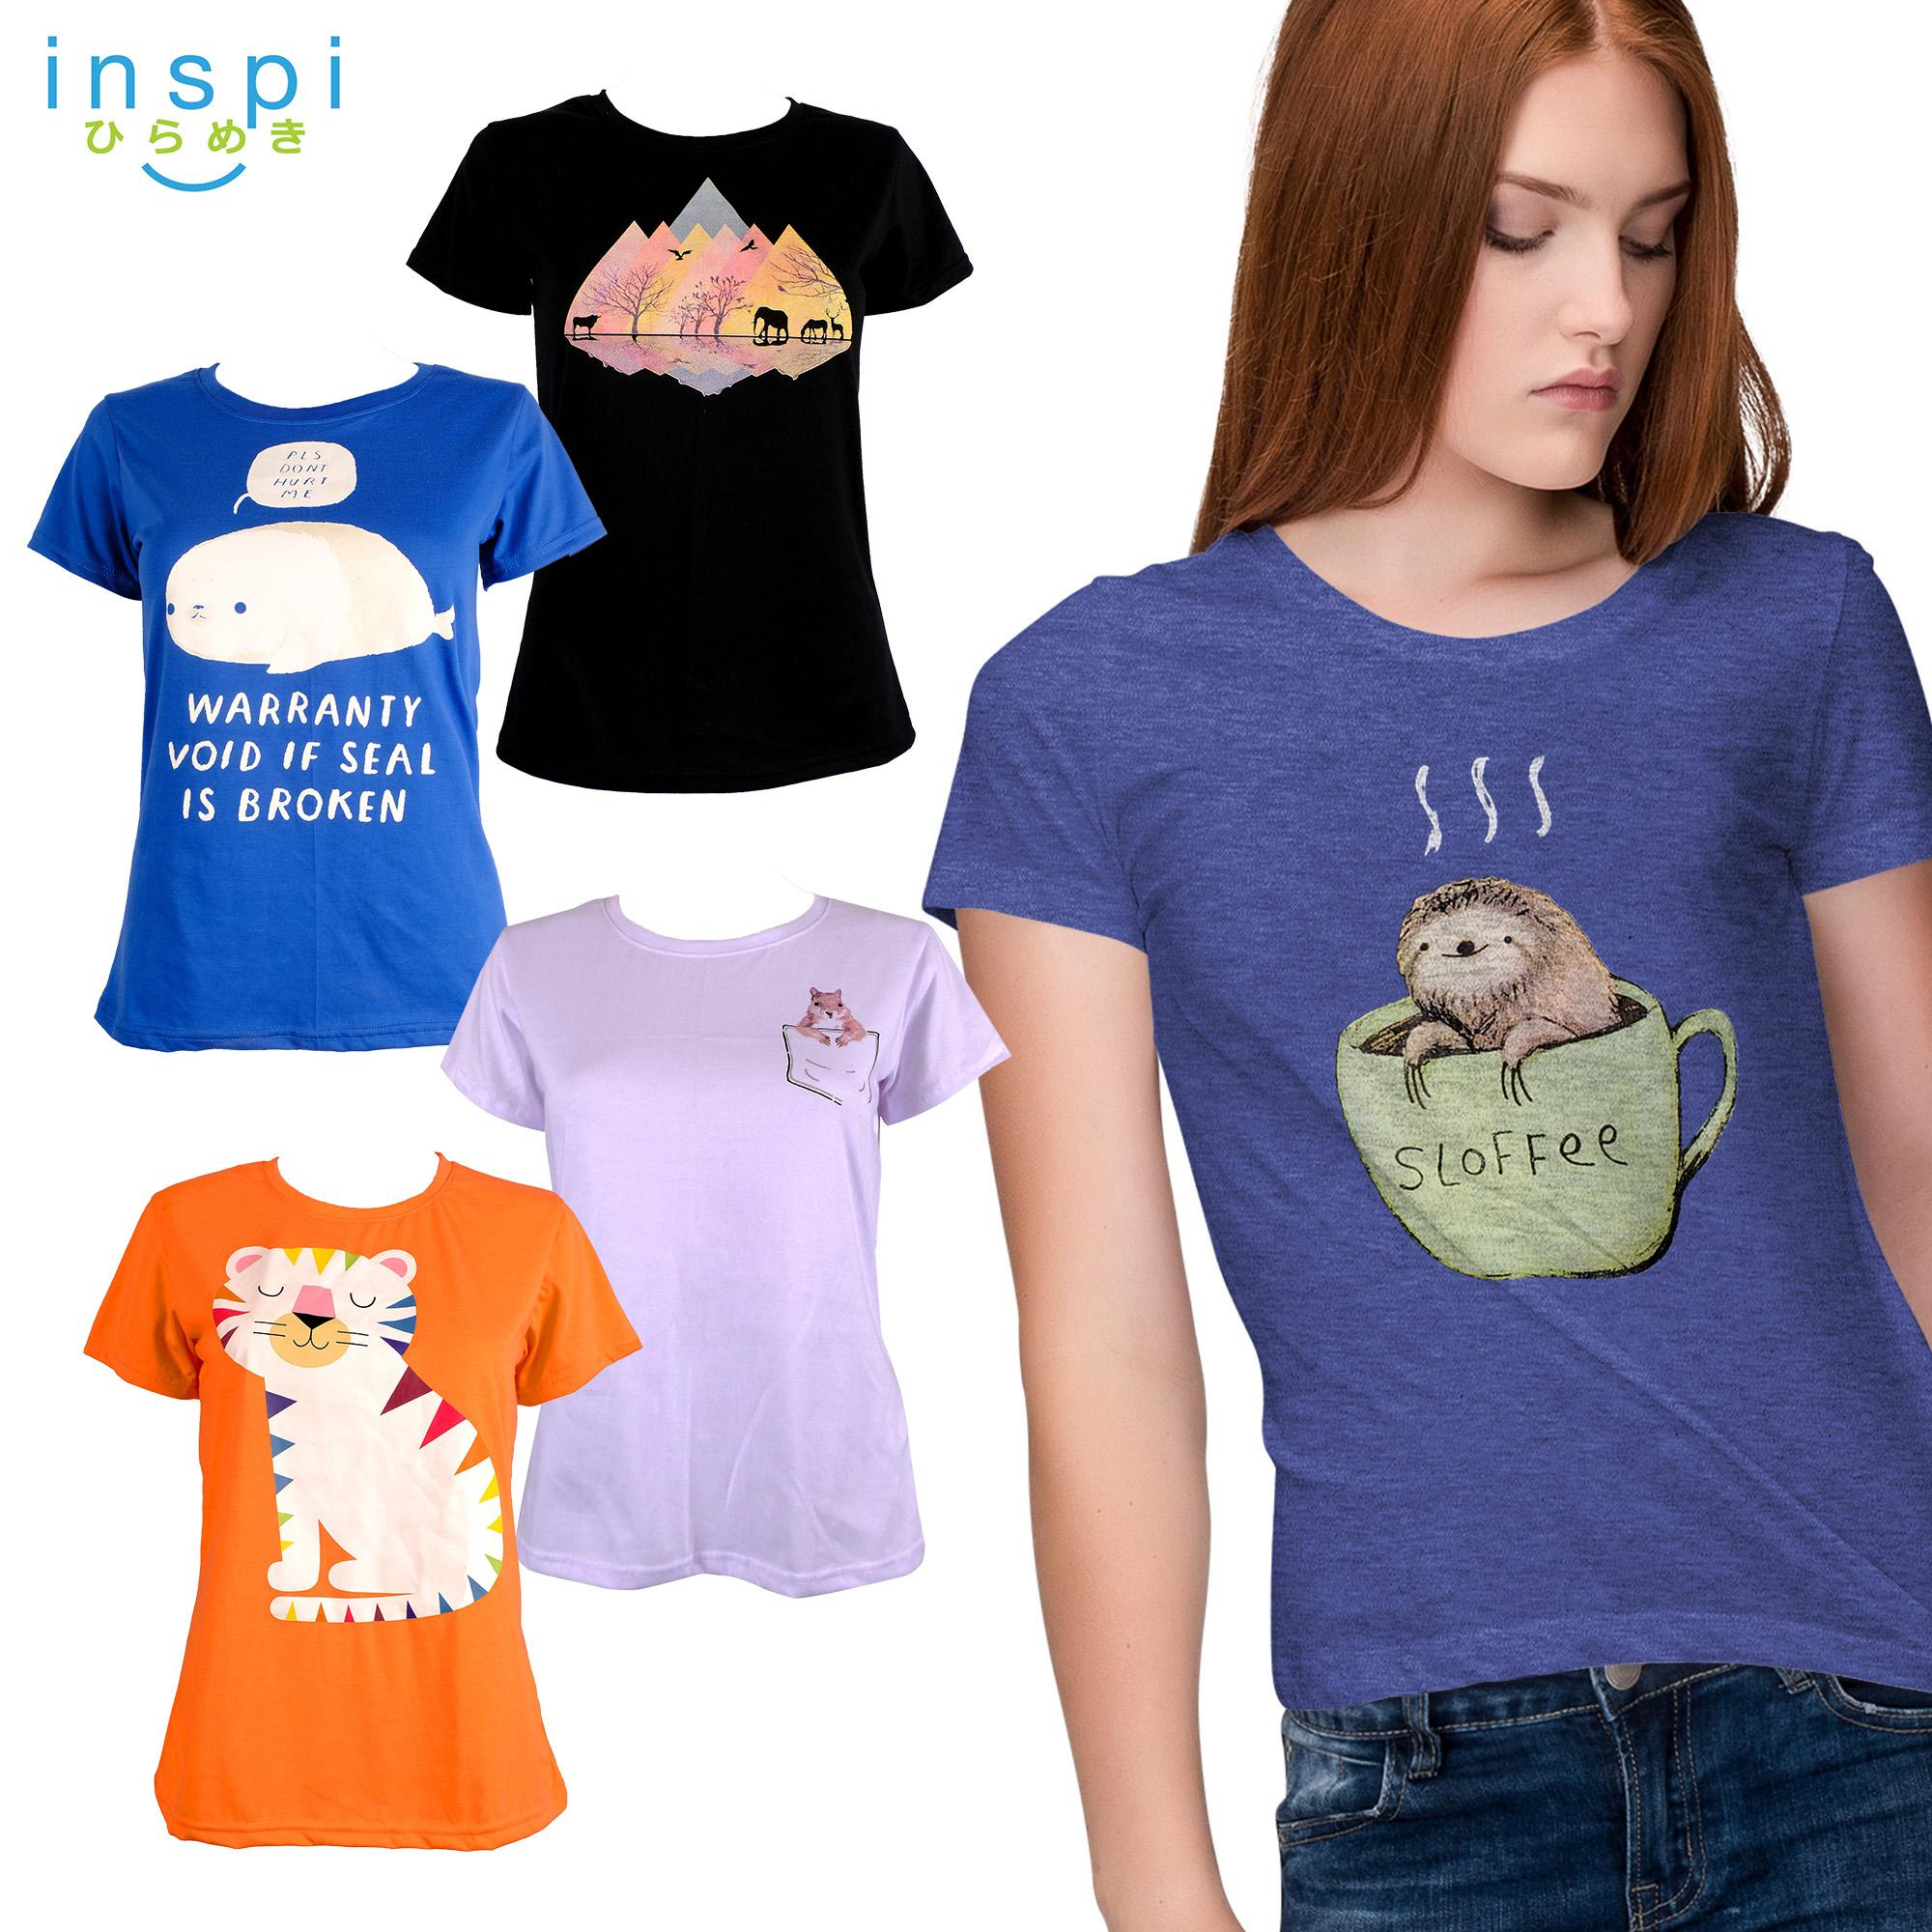 5e566d0ebf1 INSPI Tees Ladies Pet Collection tshirt printed graphic tee Ladies t shirt  shirts women tshirts for